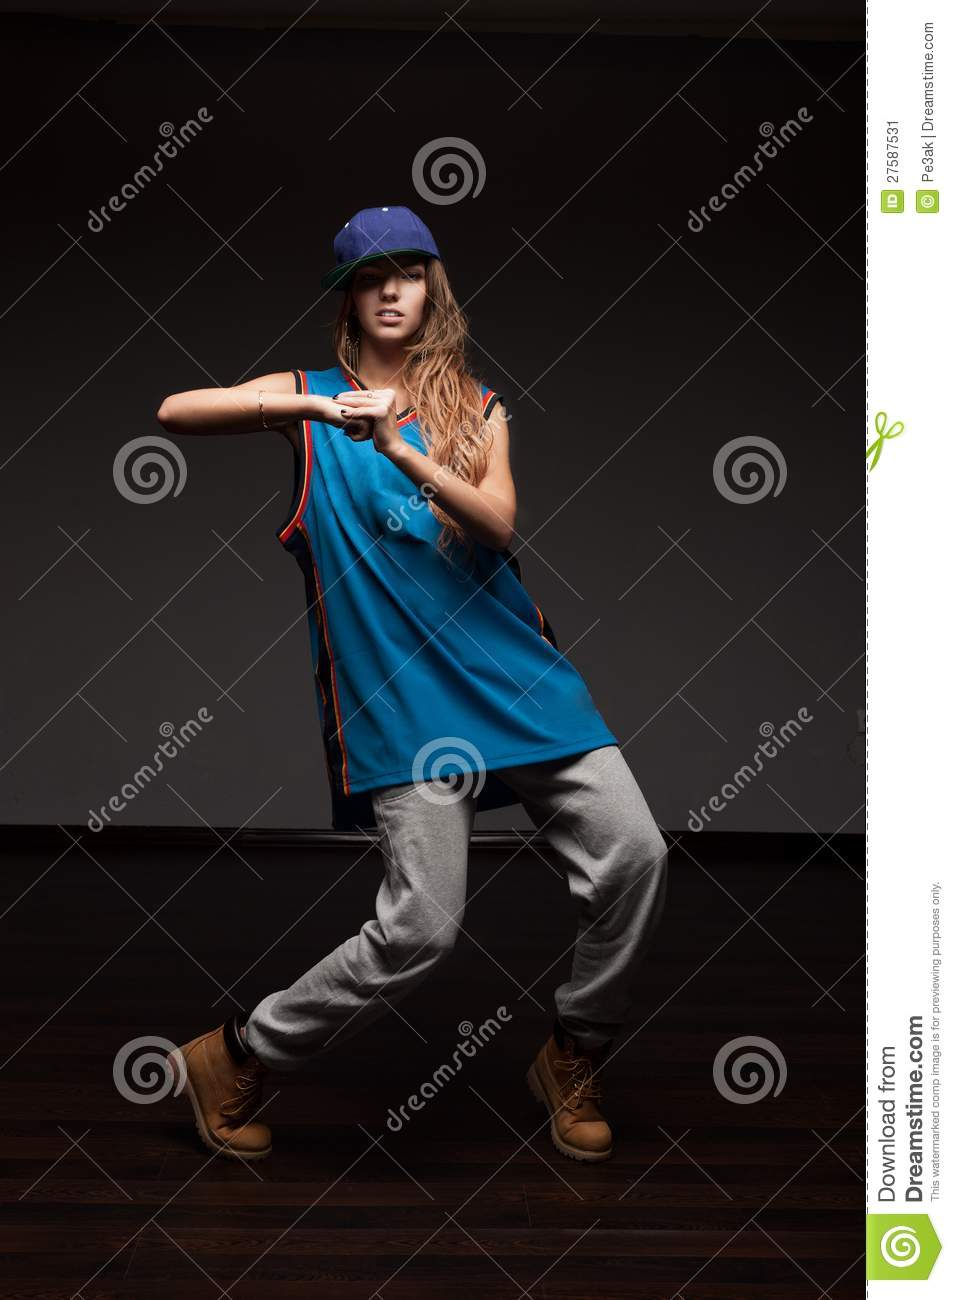 girl hip hop dancer stock image image of isolated attractive